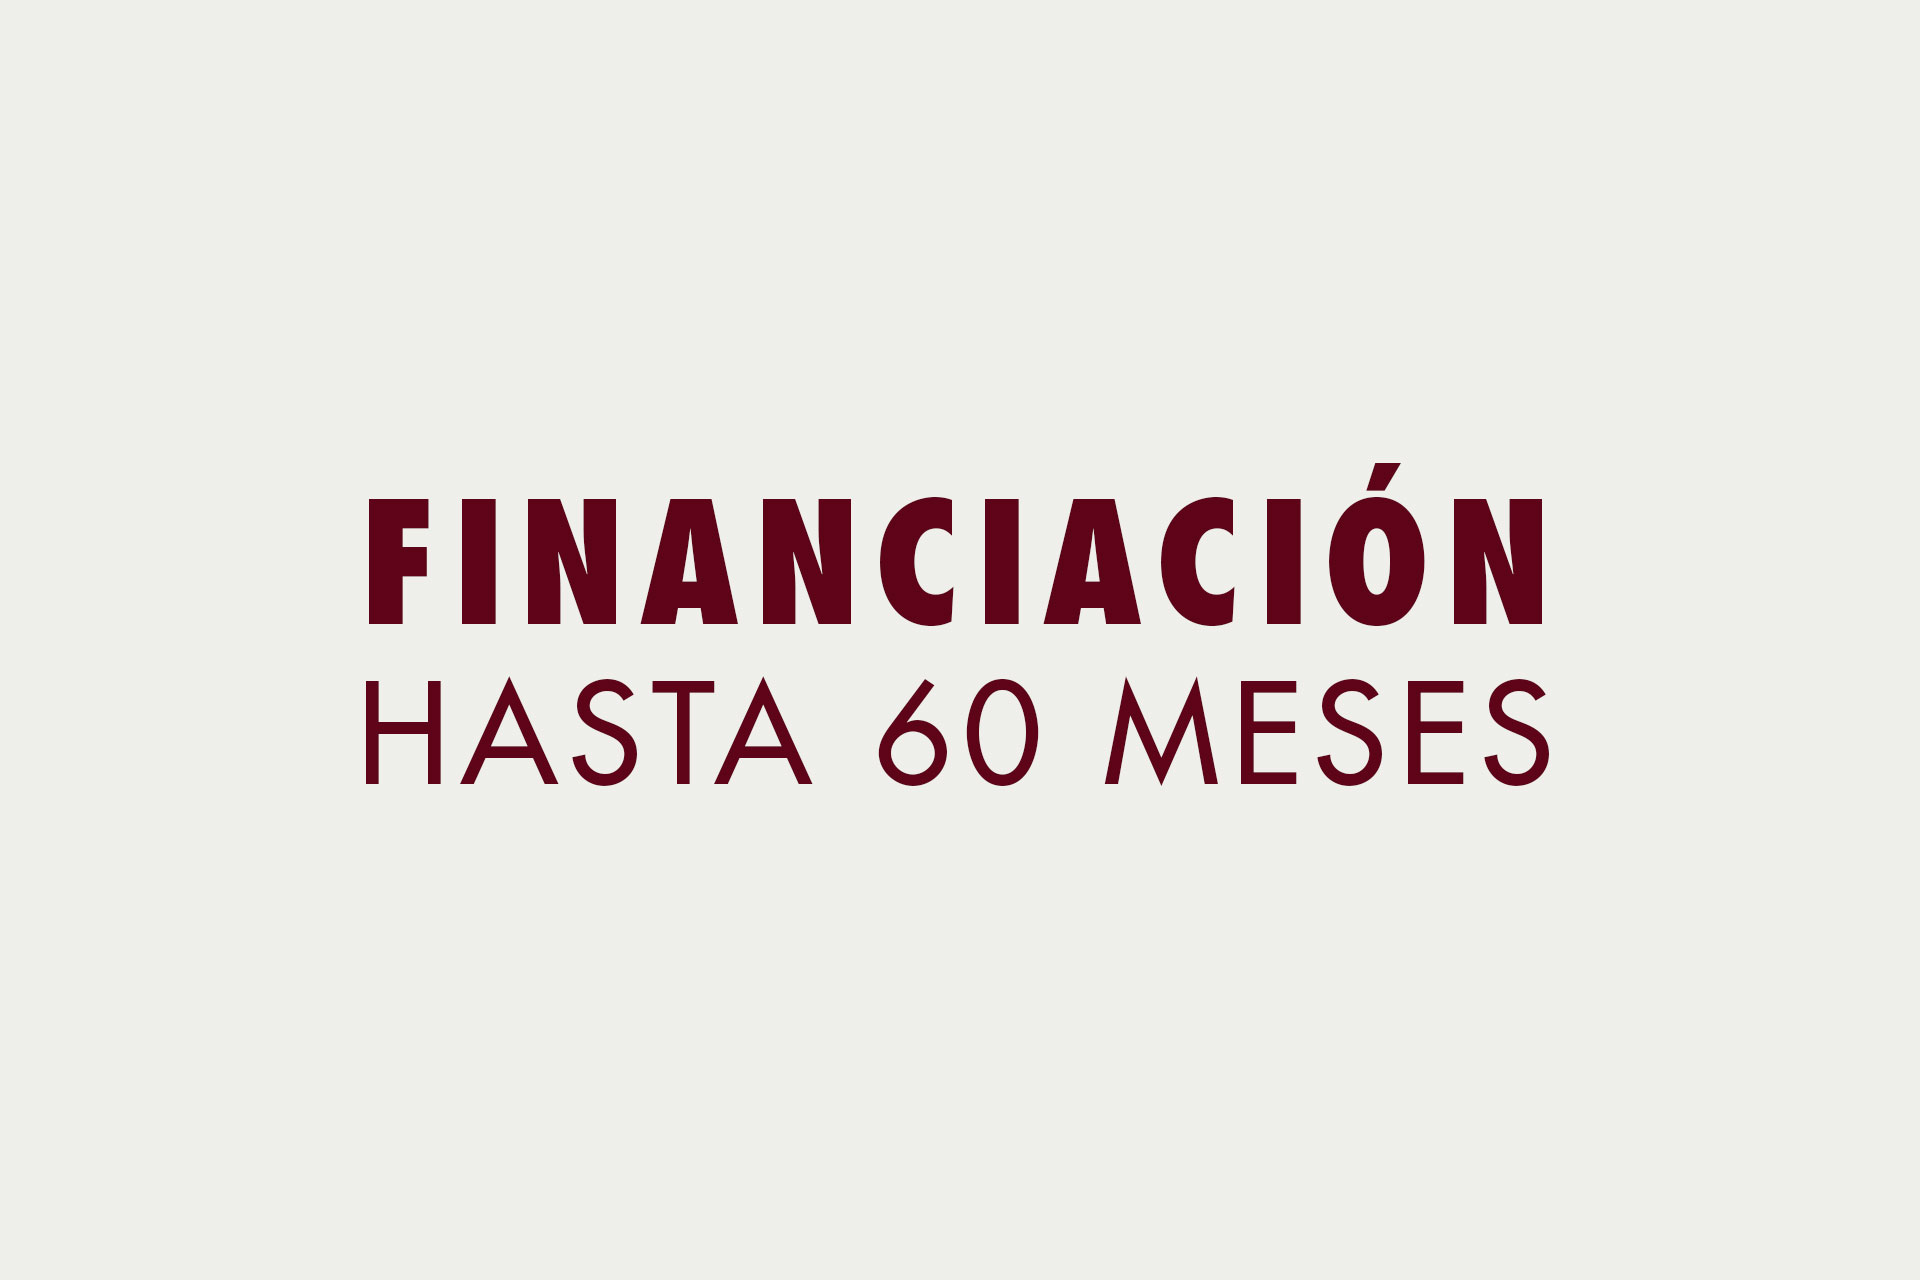 financiacion-hasta-60-meses